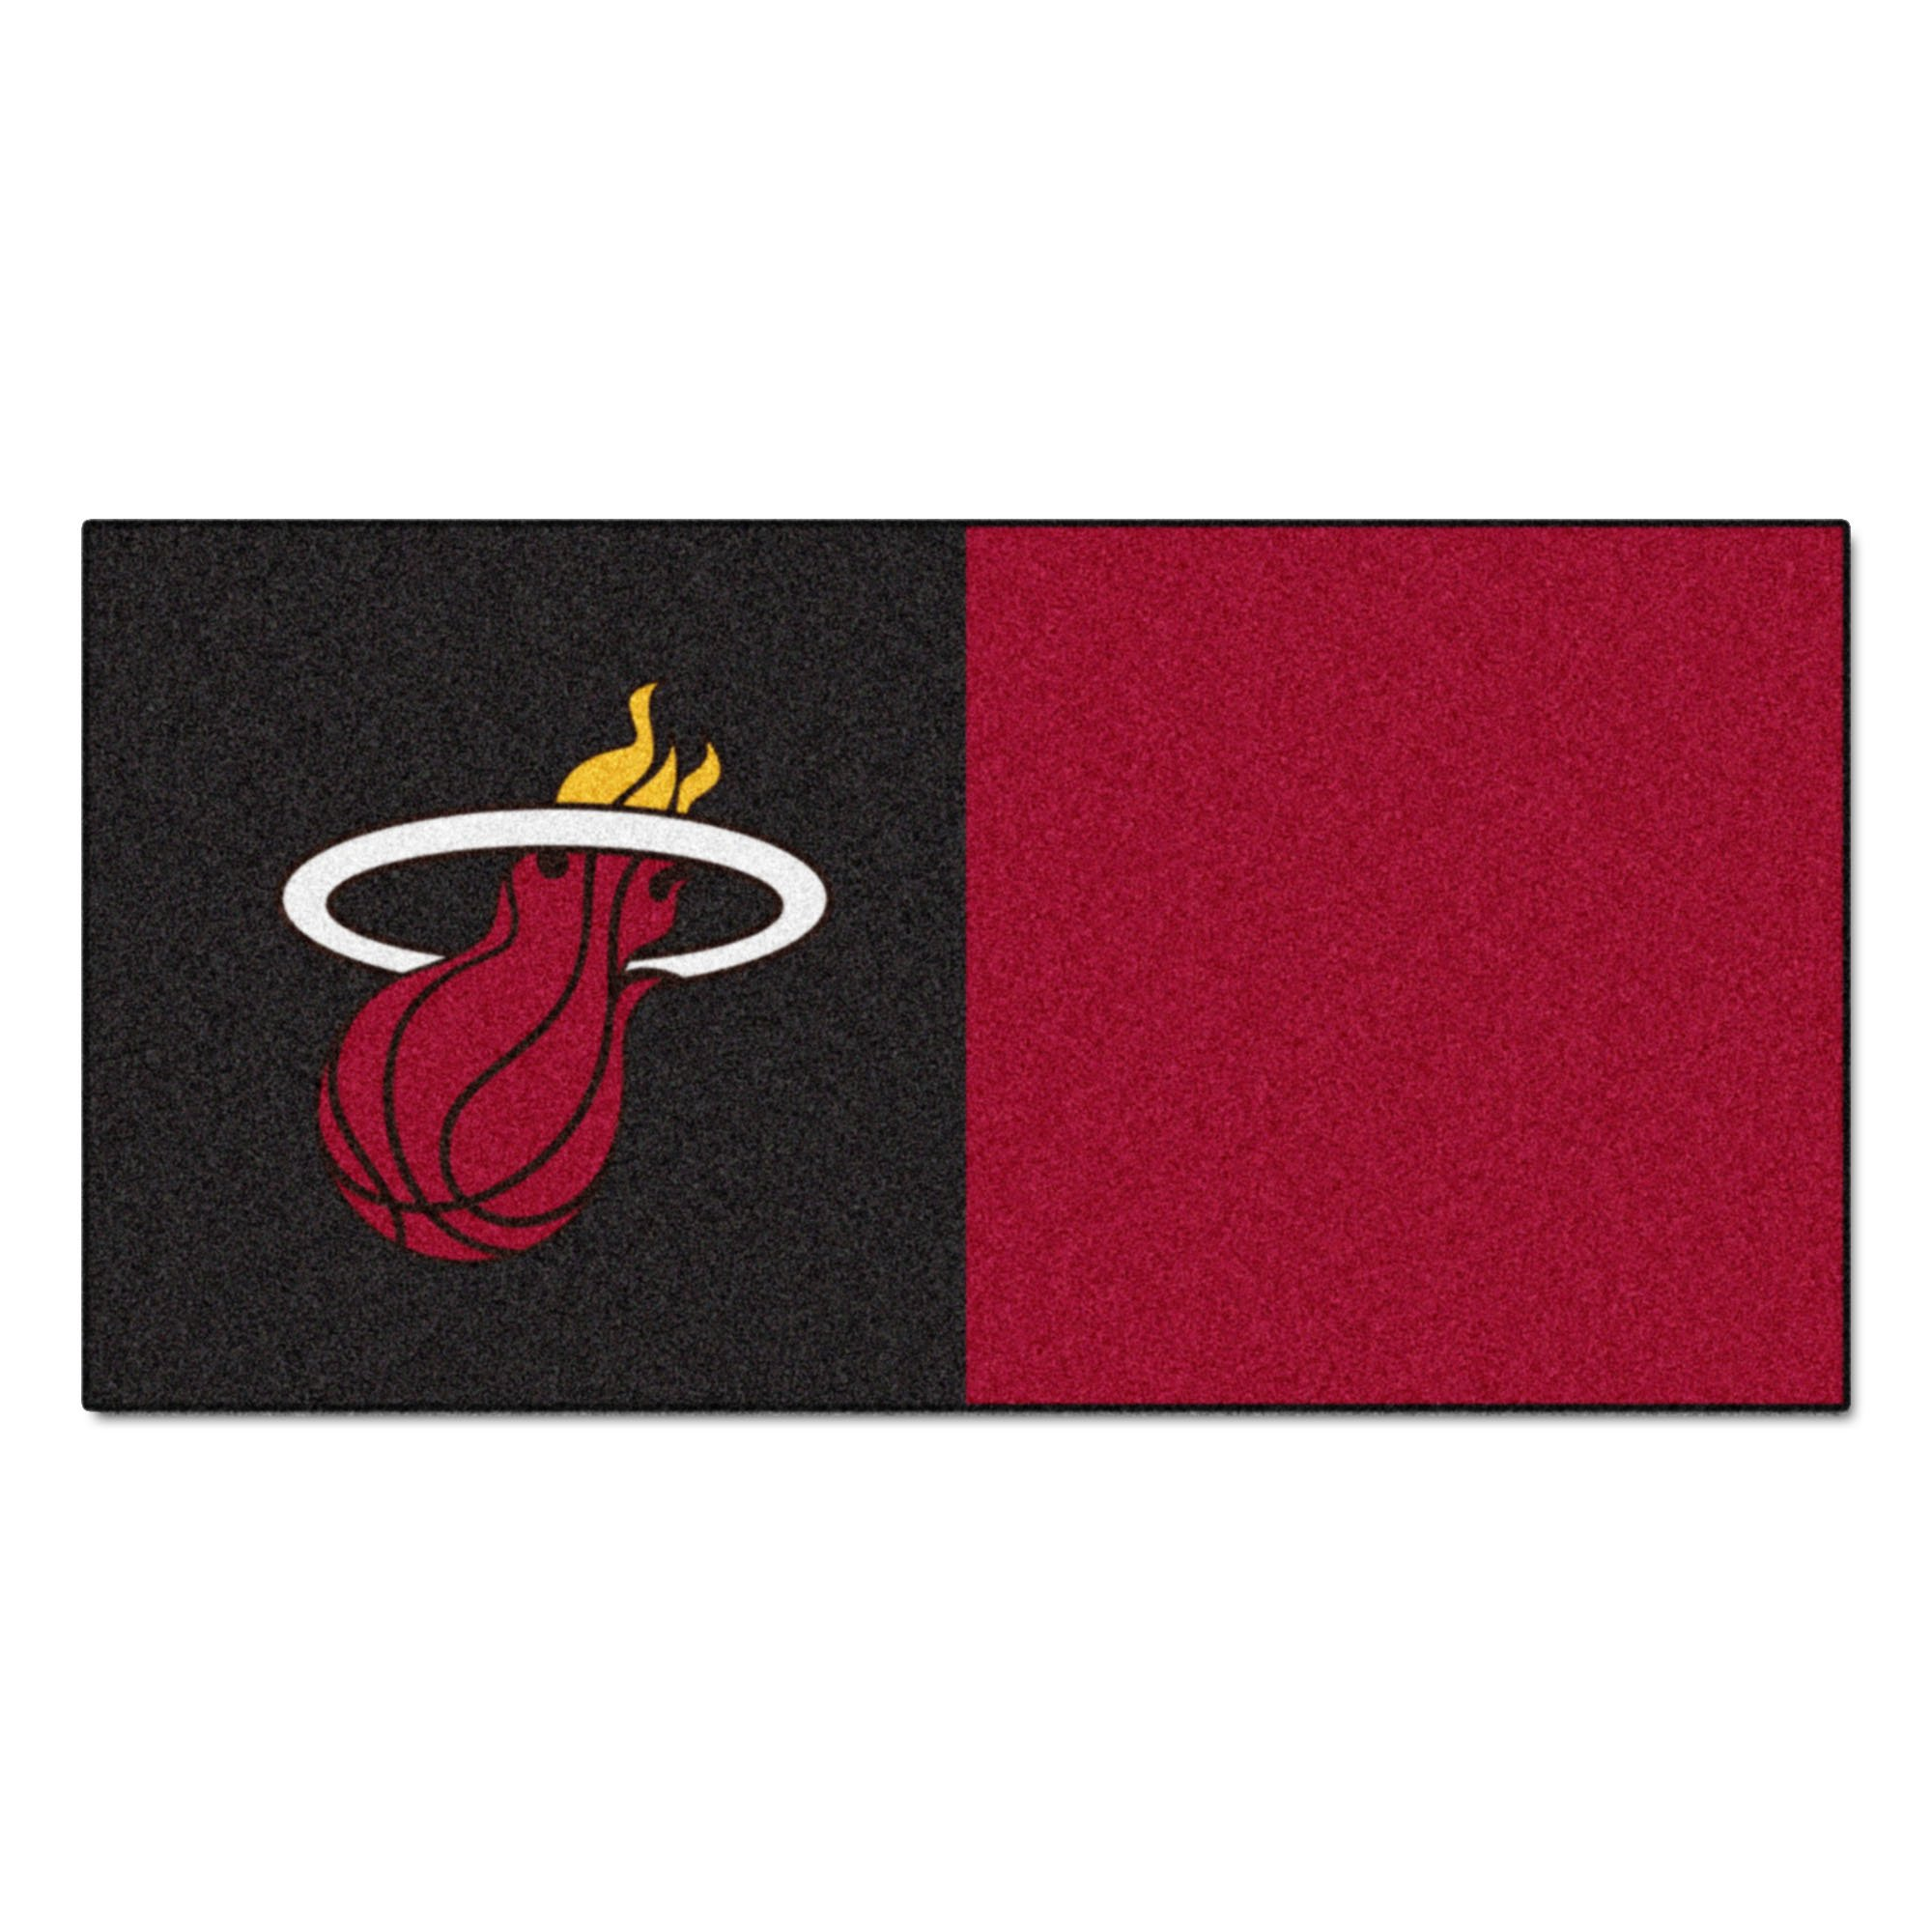 FANMATS NBA Miami Heat Nylon Face Team Carpet Tiles